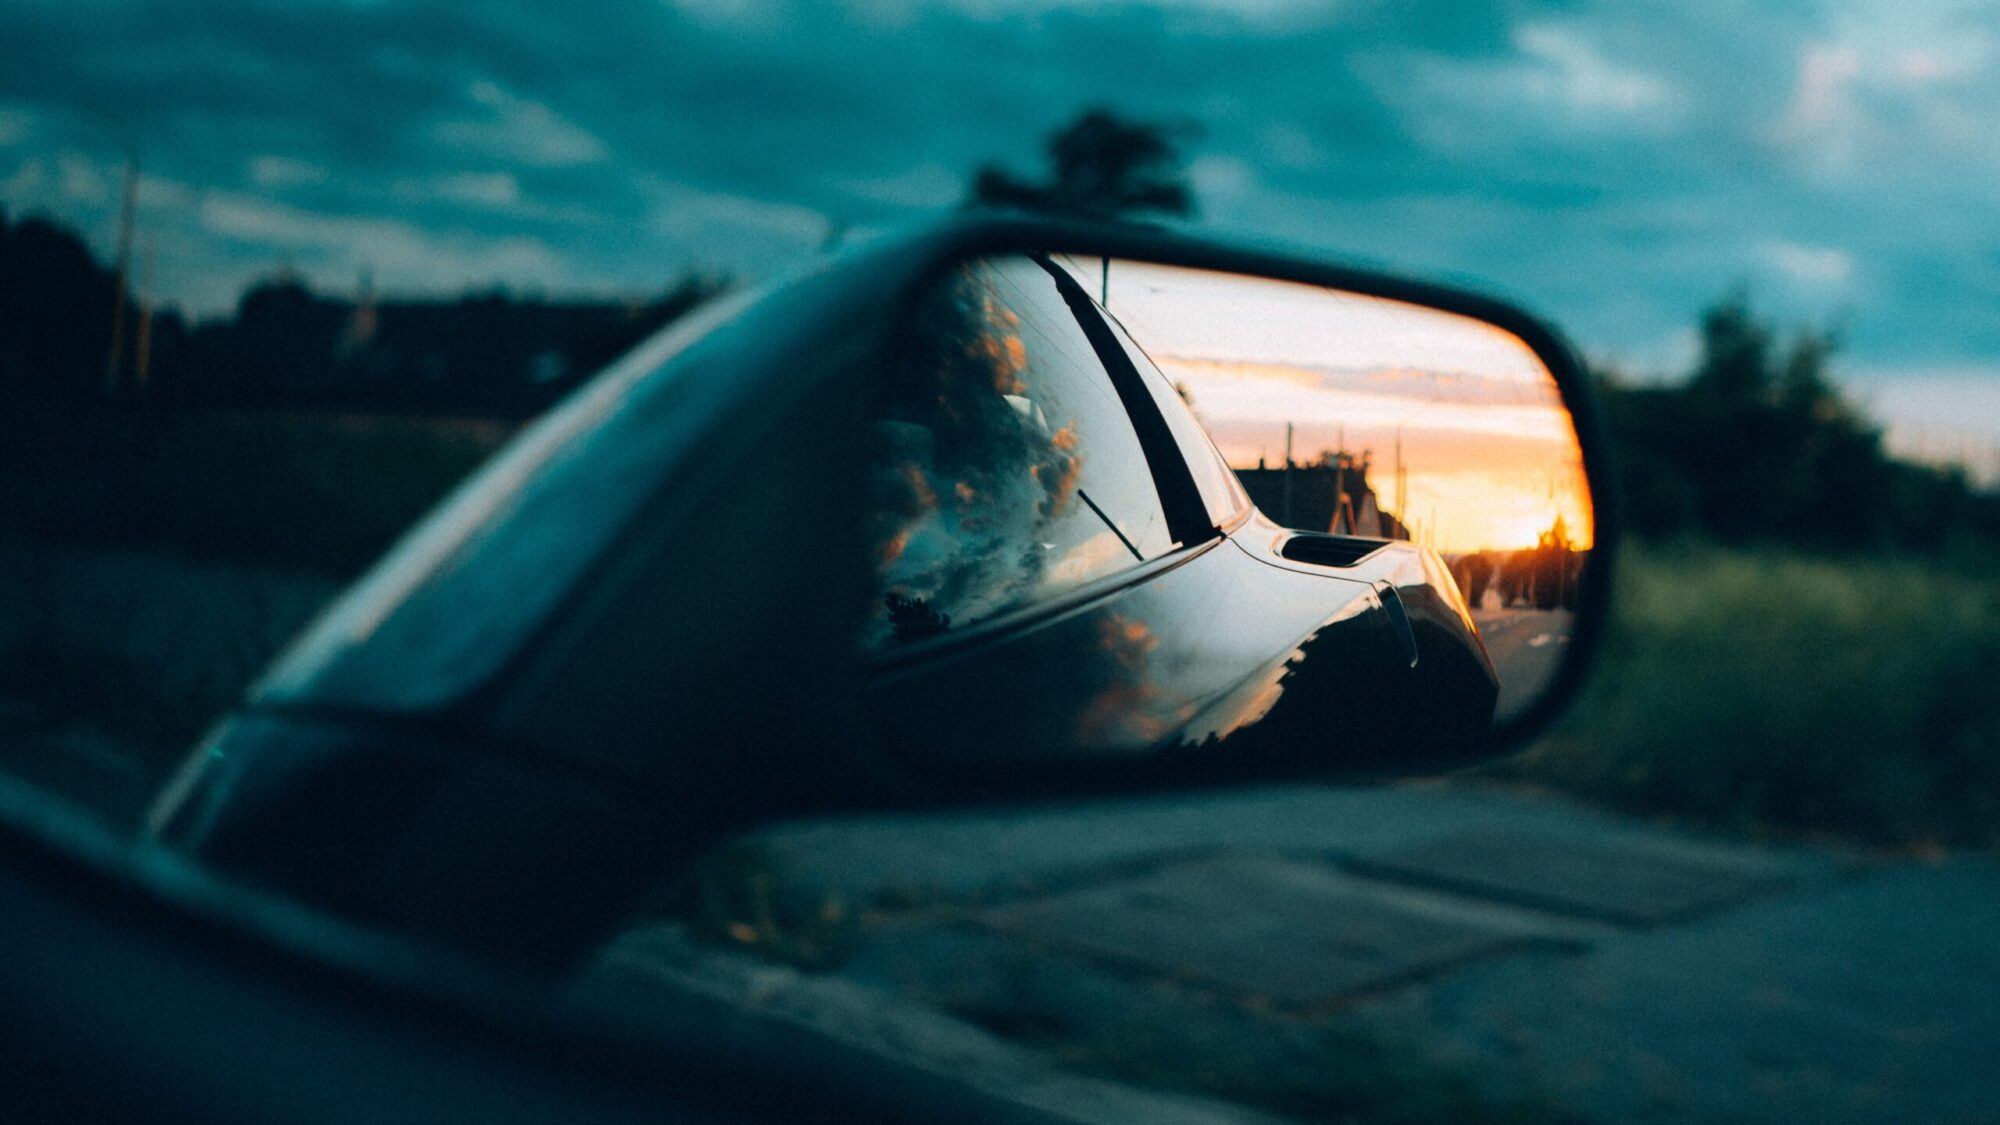 checking the rearview mirror